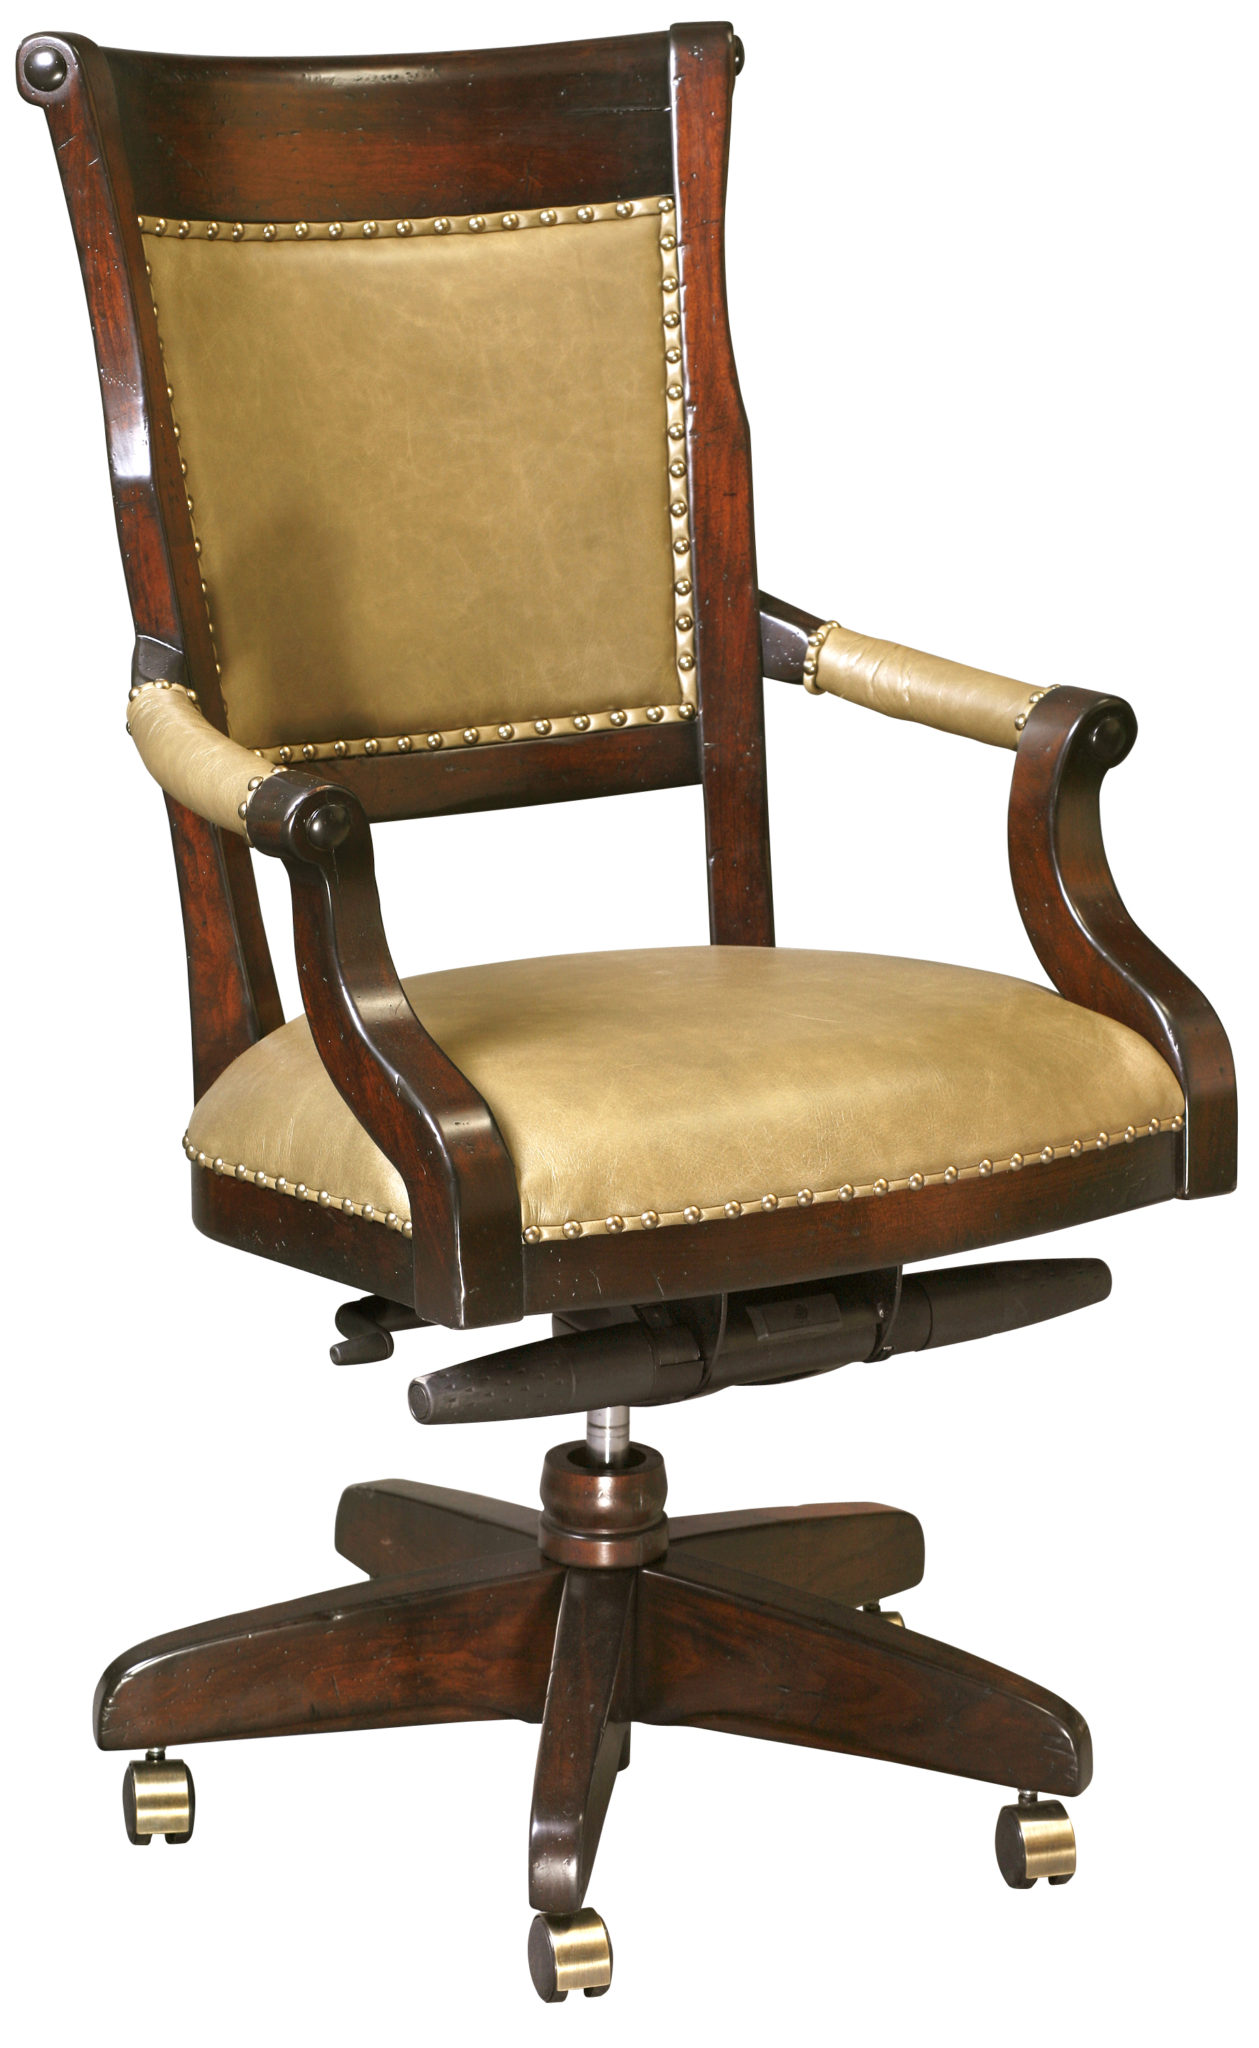 Morgan Desk Chair Image